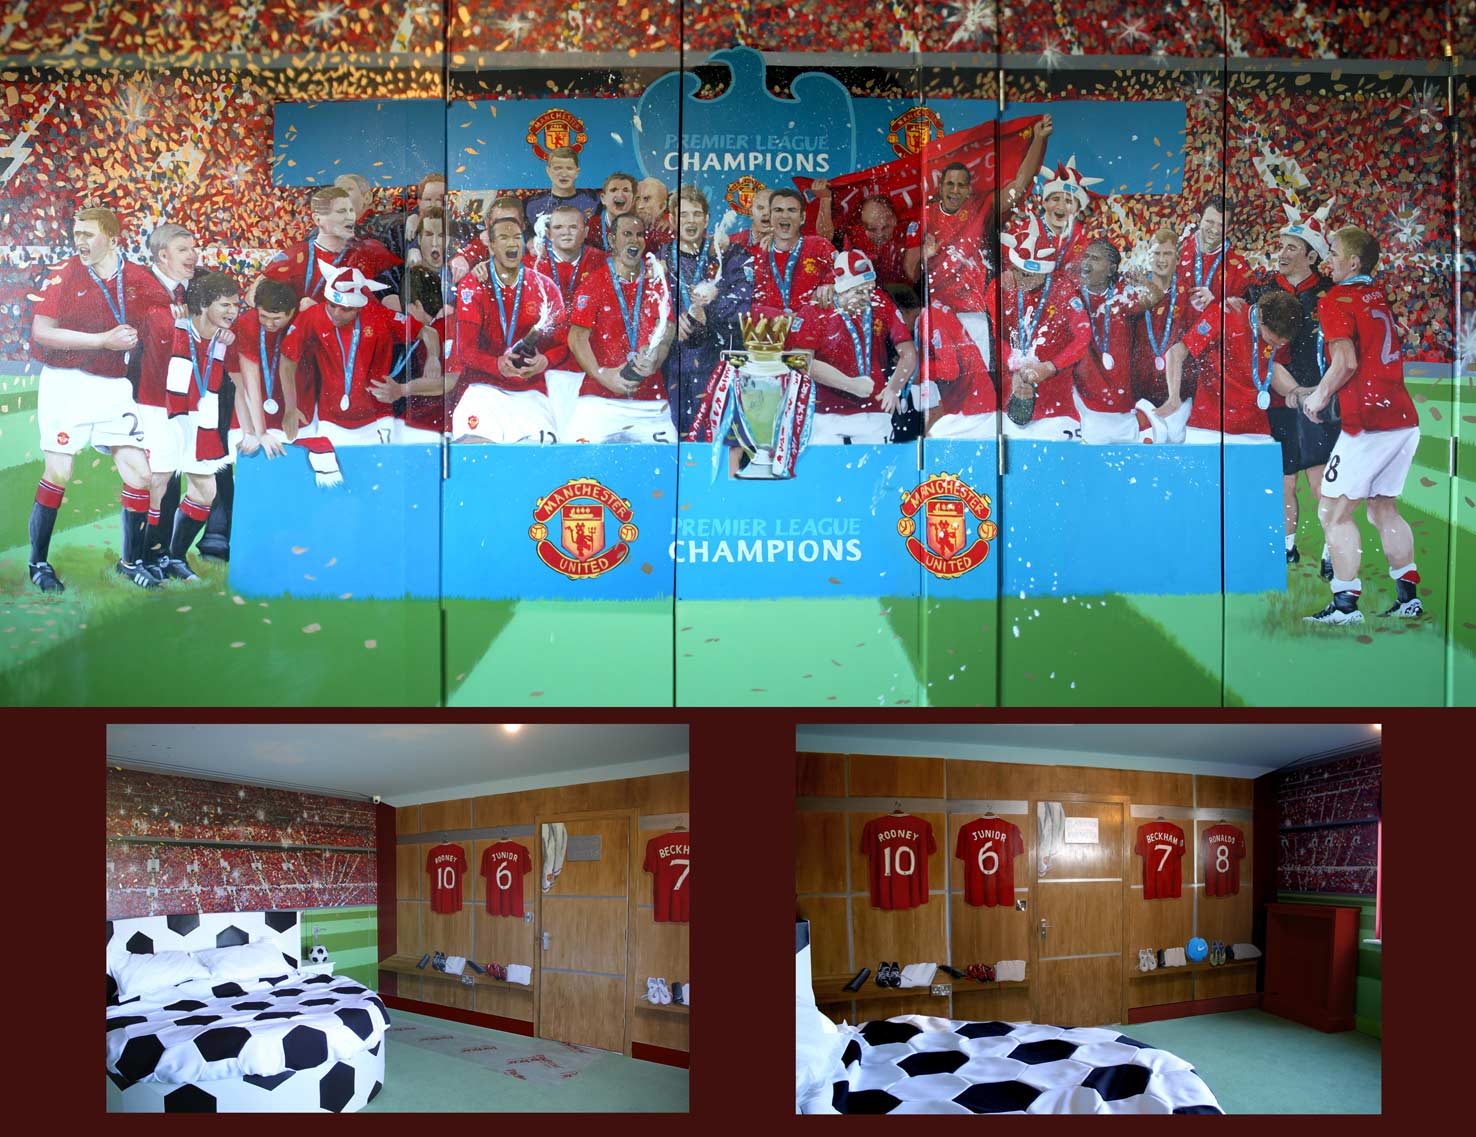 Superb Football Murals Grasscloth Wallpaper. Champions Football Stars Home Wall  Stickerremovable Kids ... Home Design Ideas